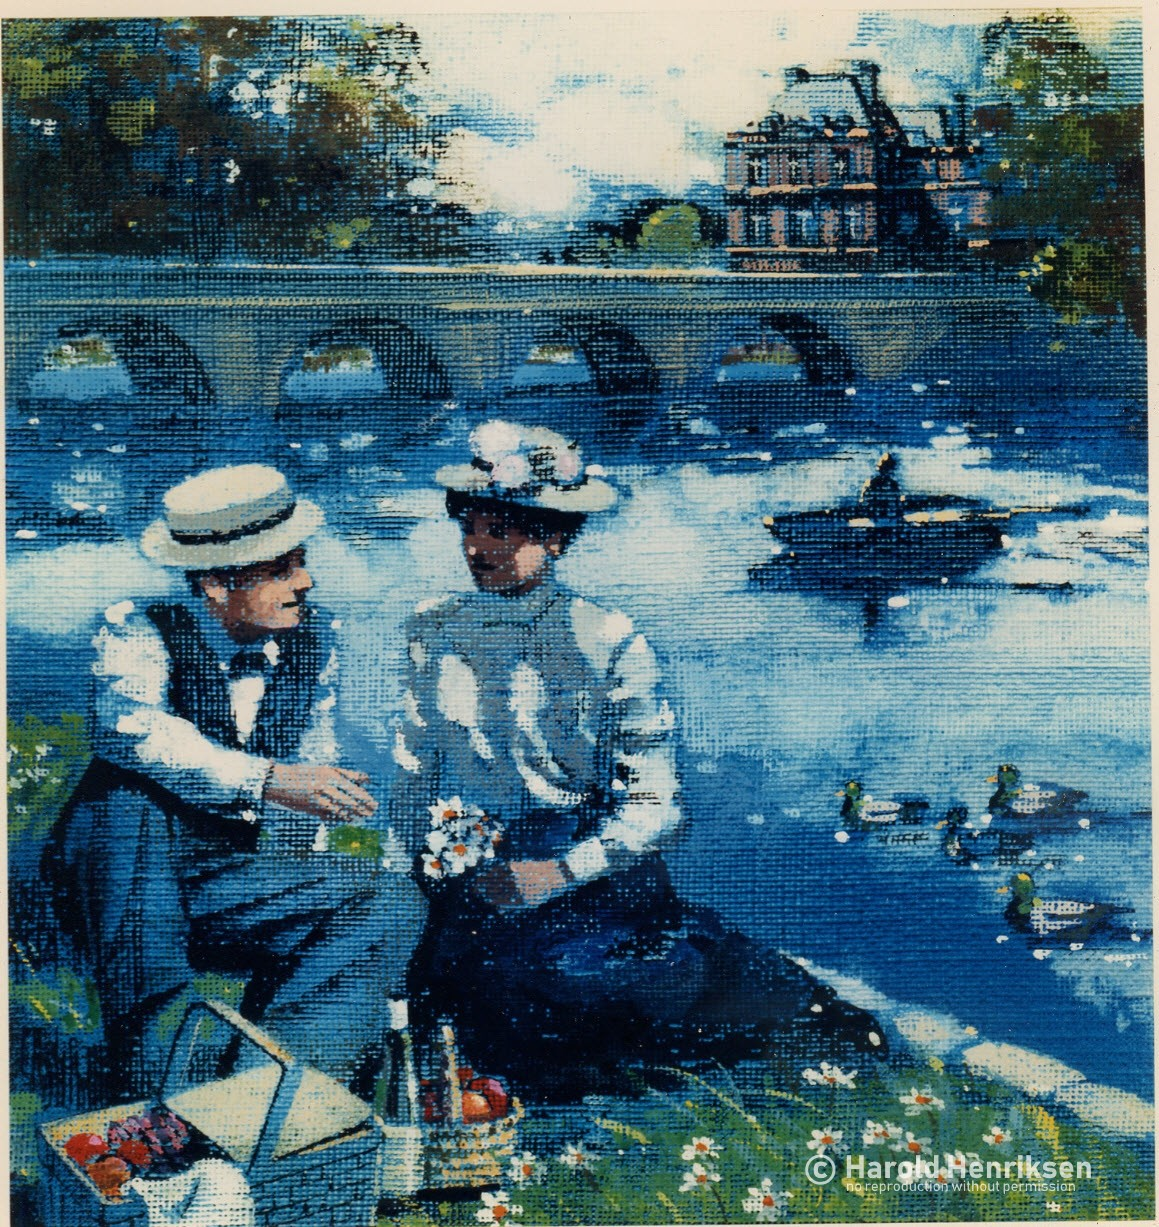 French Picnic painting by Harold Henriksen.